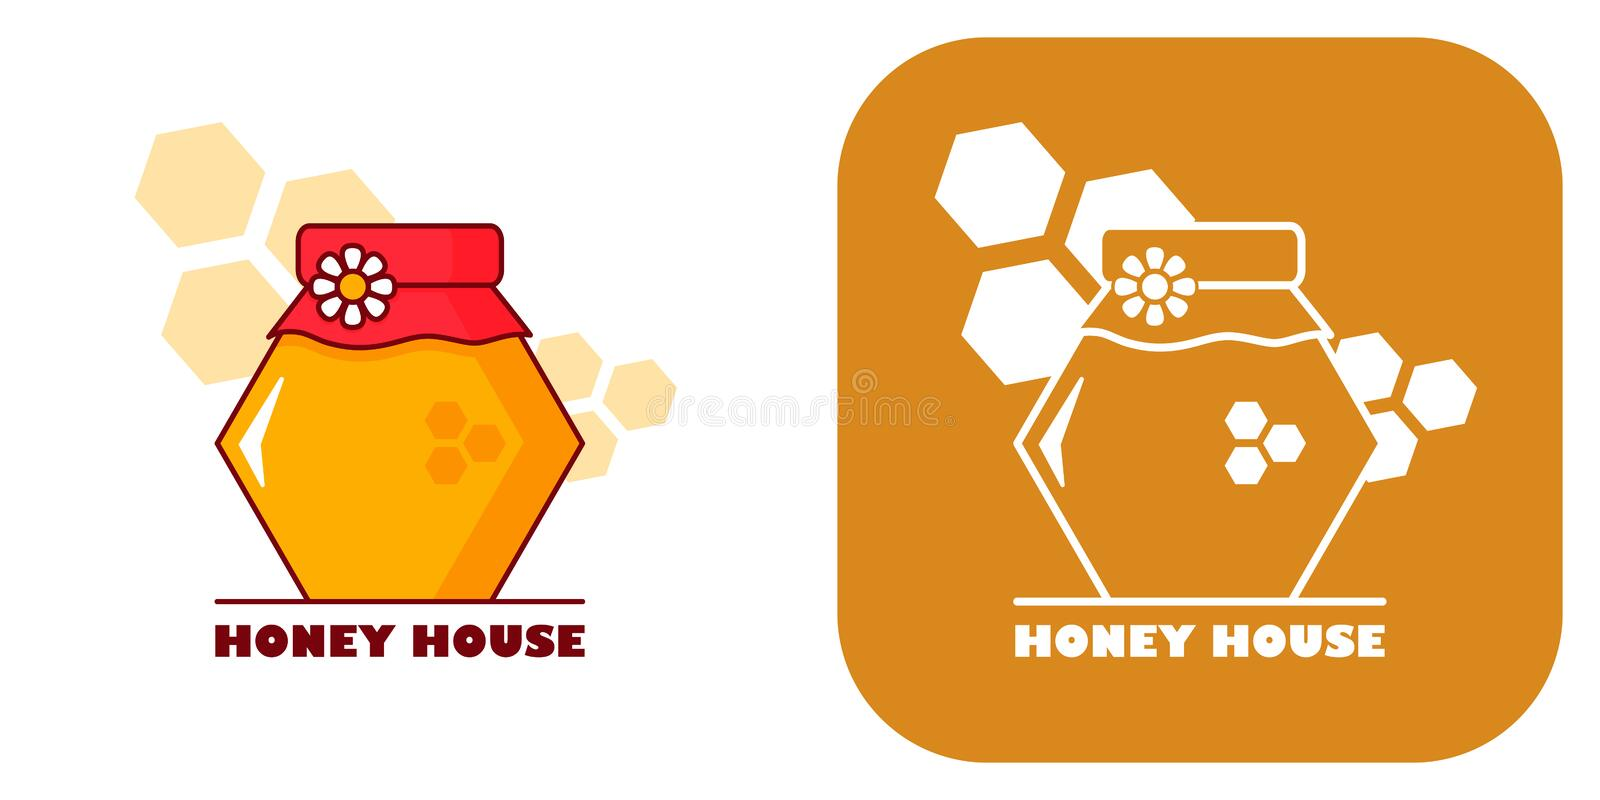 Flower honey house 2 variations. Logo for honey shop or apiary. Depicted in the form of a Bank of honeycombs with a flower. Two variations vector illustration